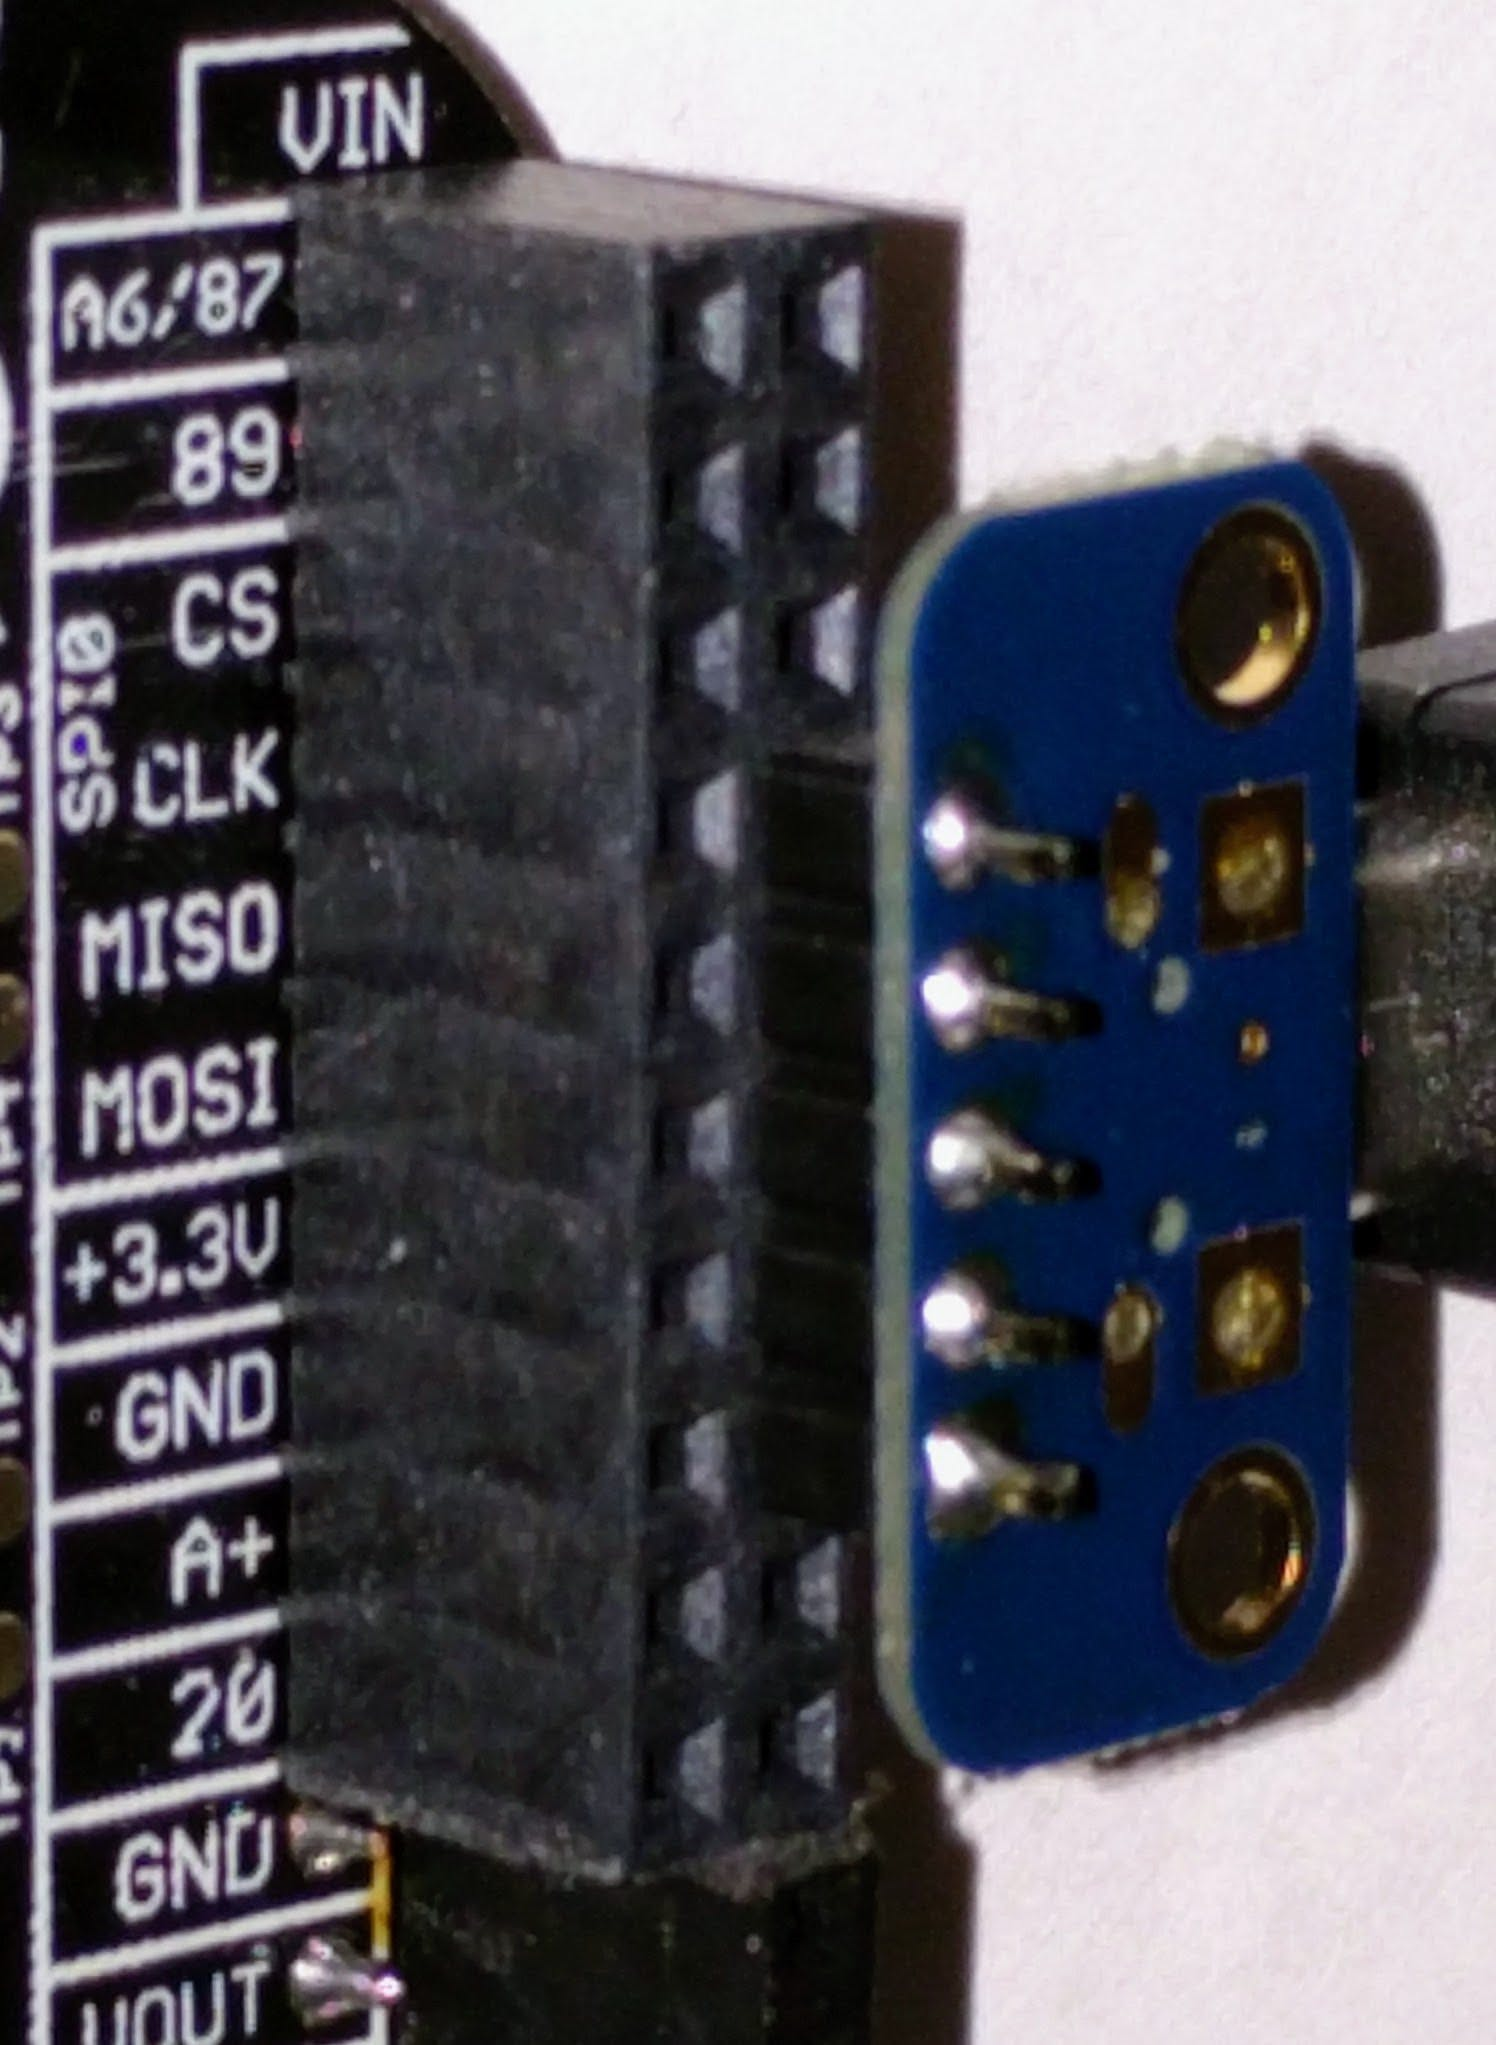 A closeup of how to plug the USB breakout board into the PocketBeagle. It is connected to pins P1_7 through P1_15.